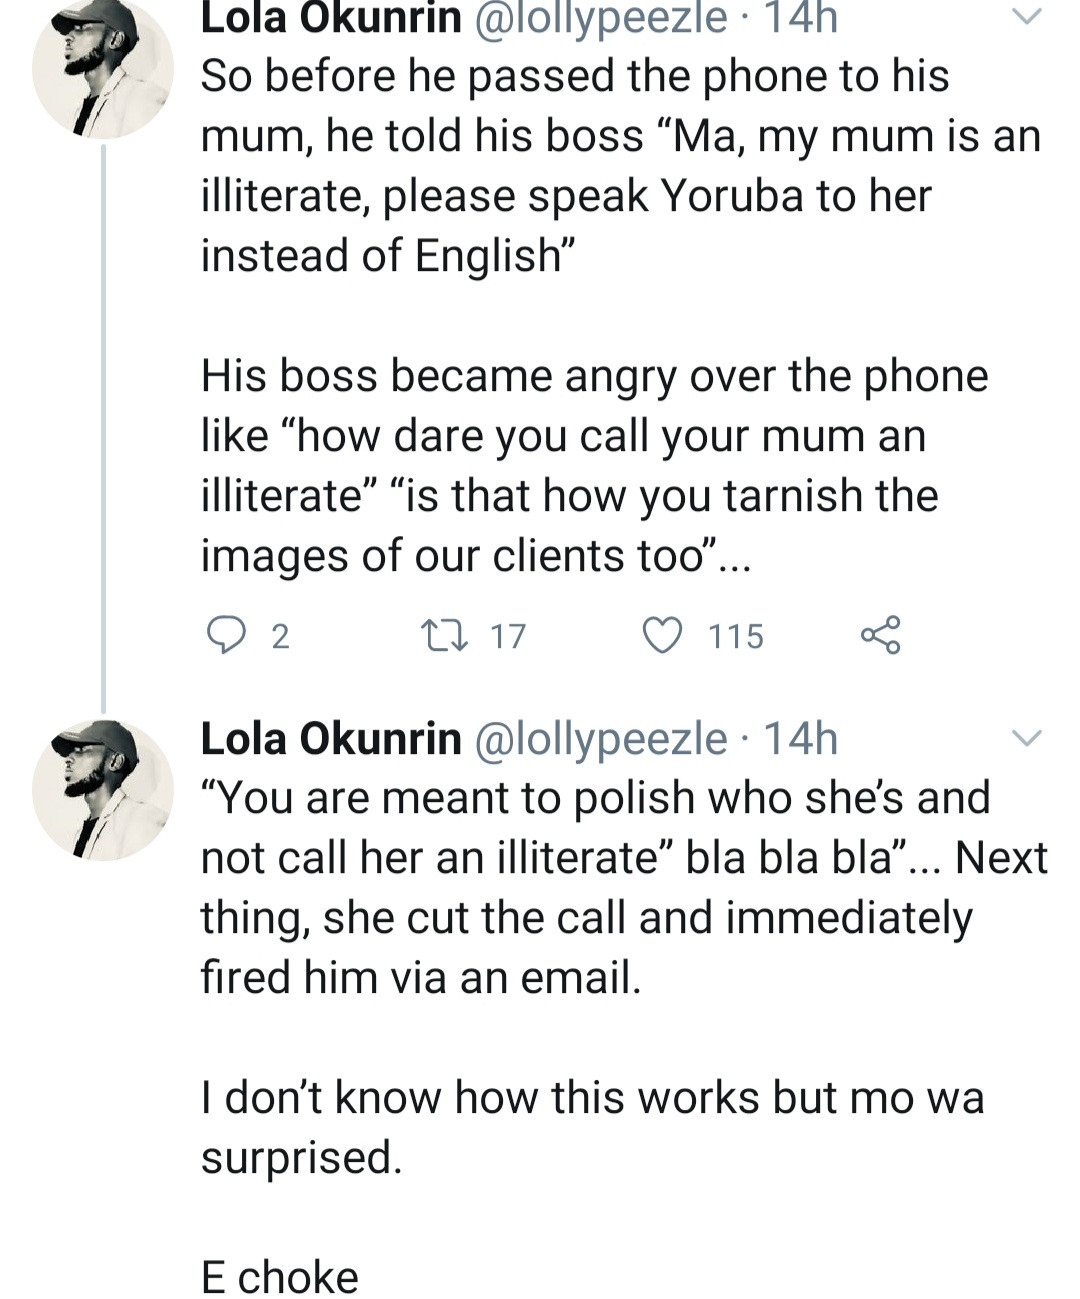 Twitter stories: Man fired by boss for the statement he made about his own mother